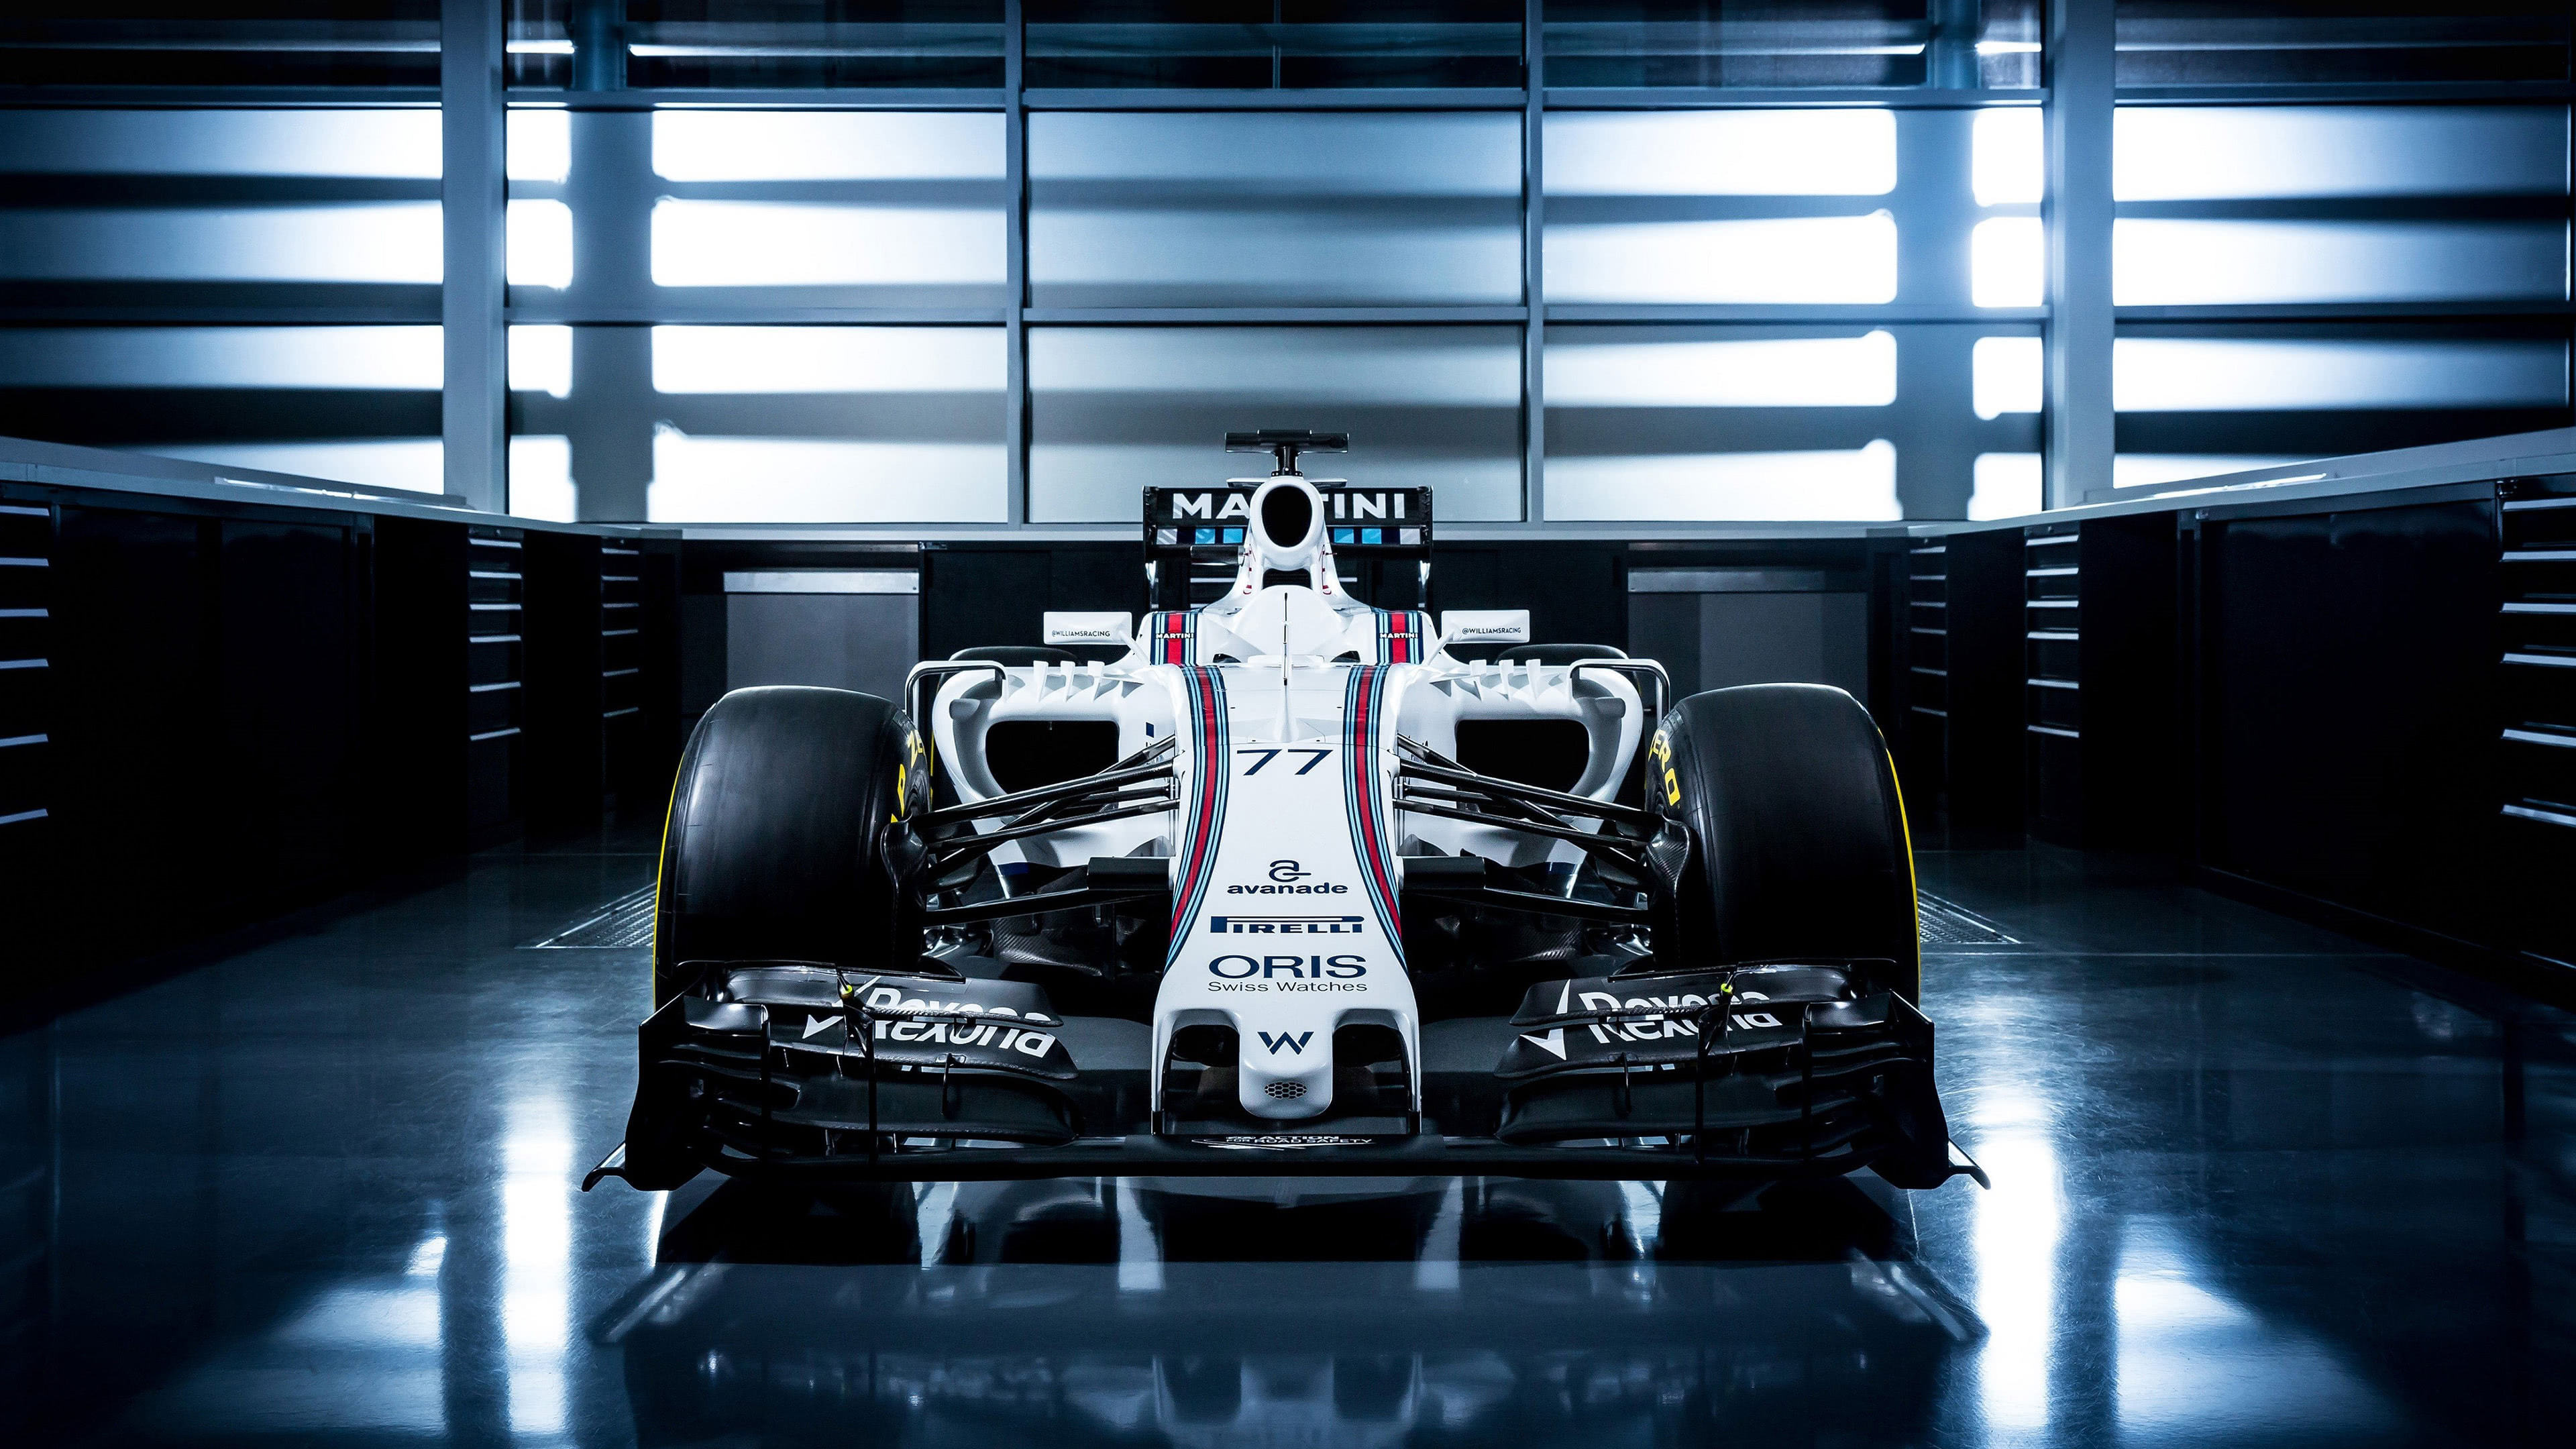 Williams FW38 f1 Fornt UHD 4K Wallpaper Pixelz 3840x2160